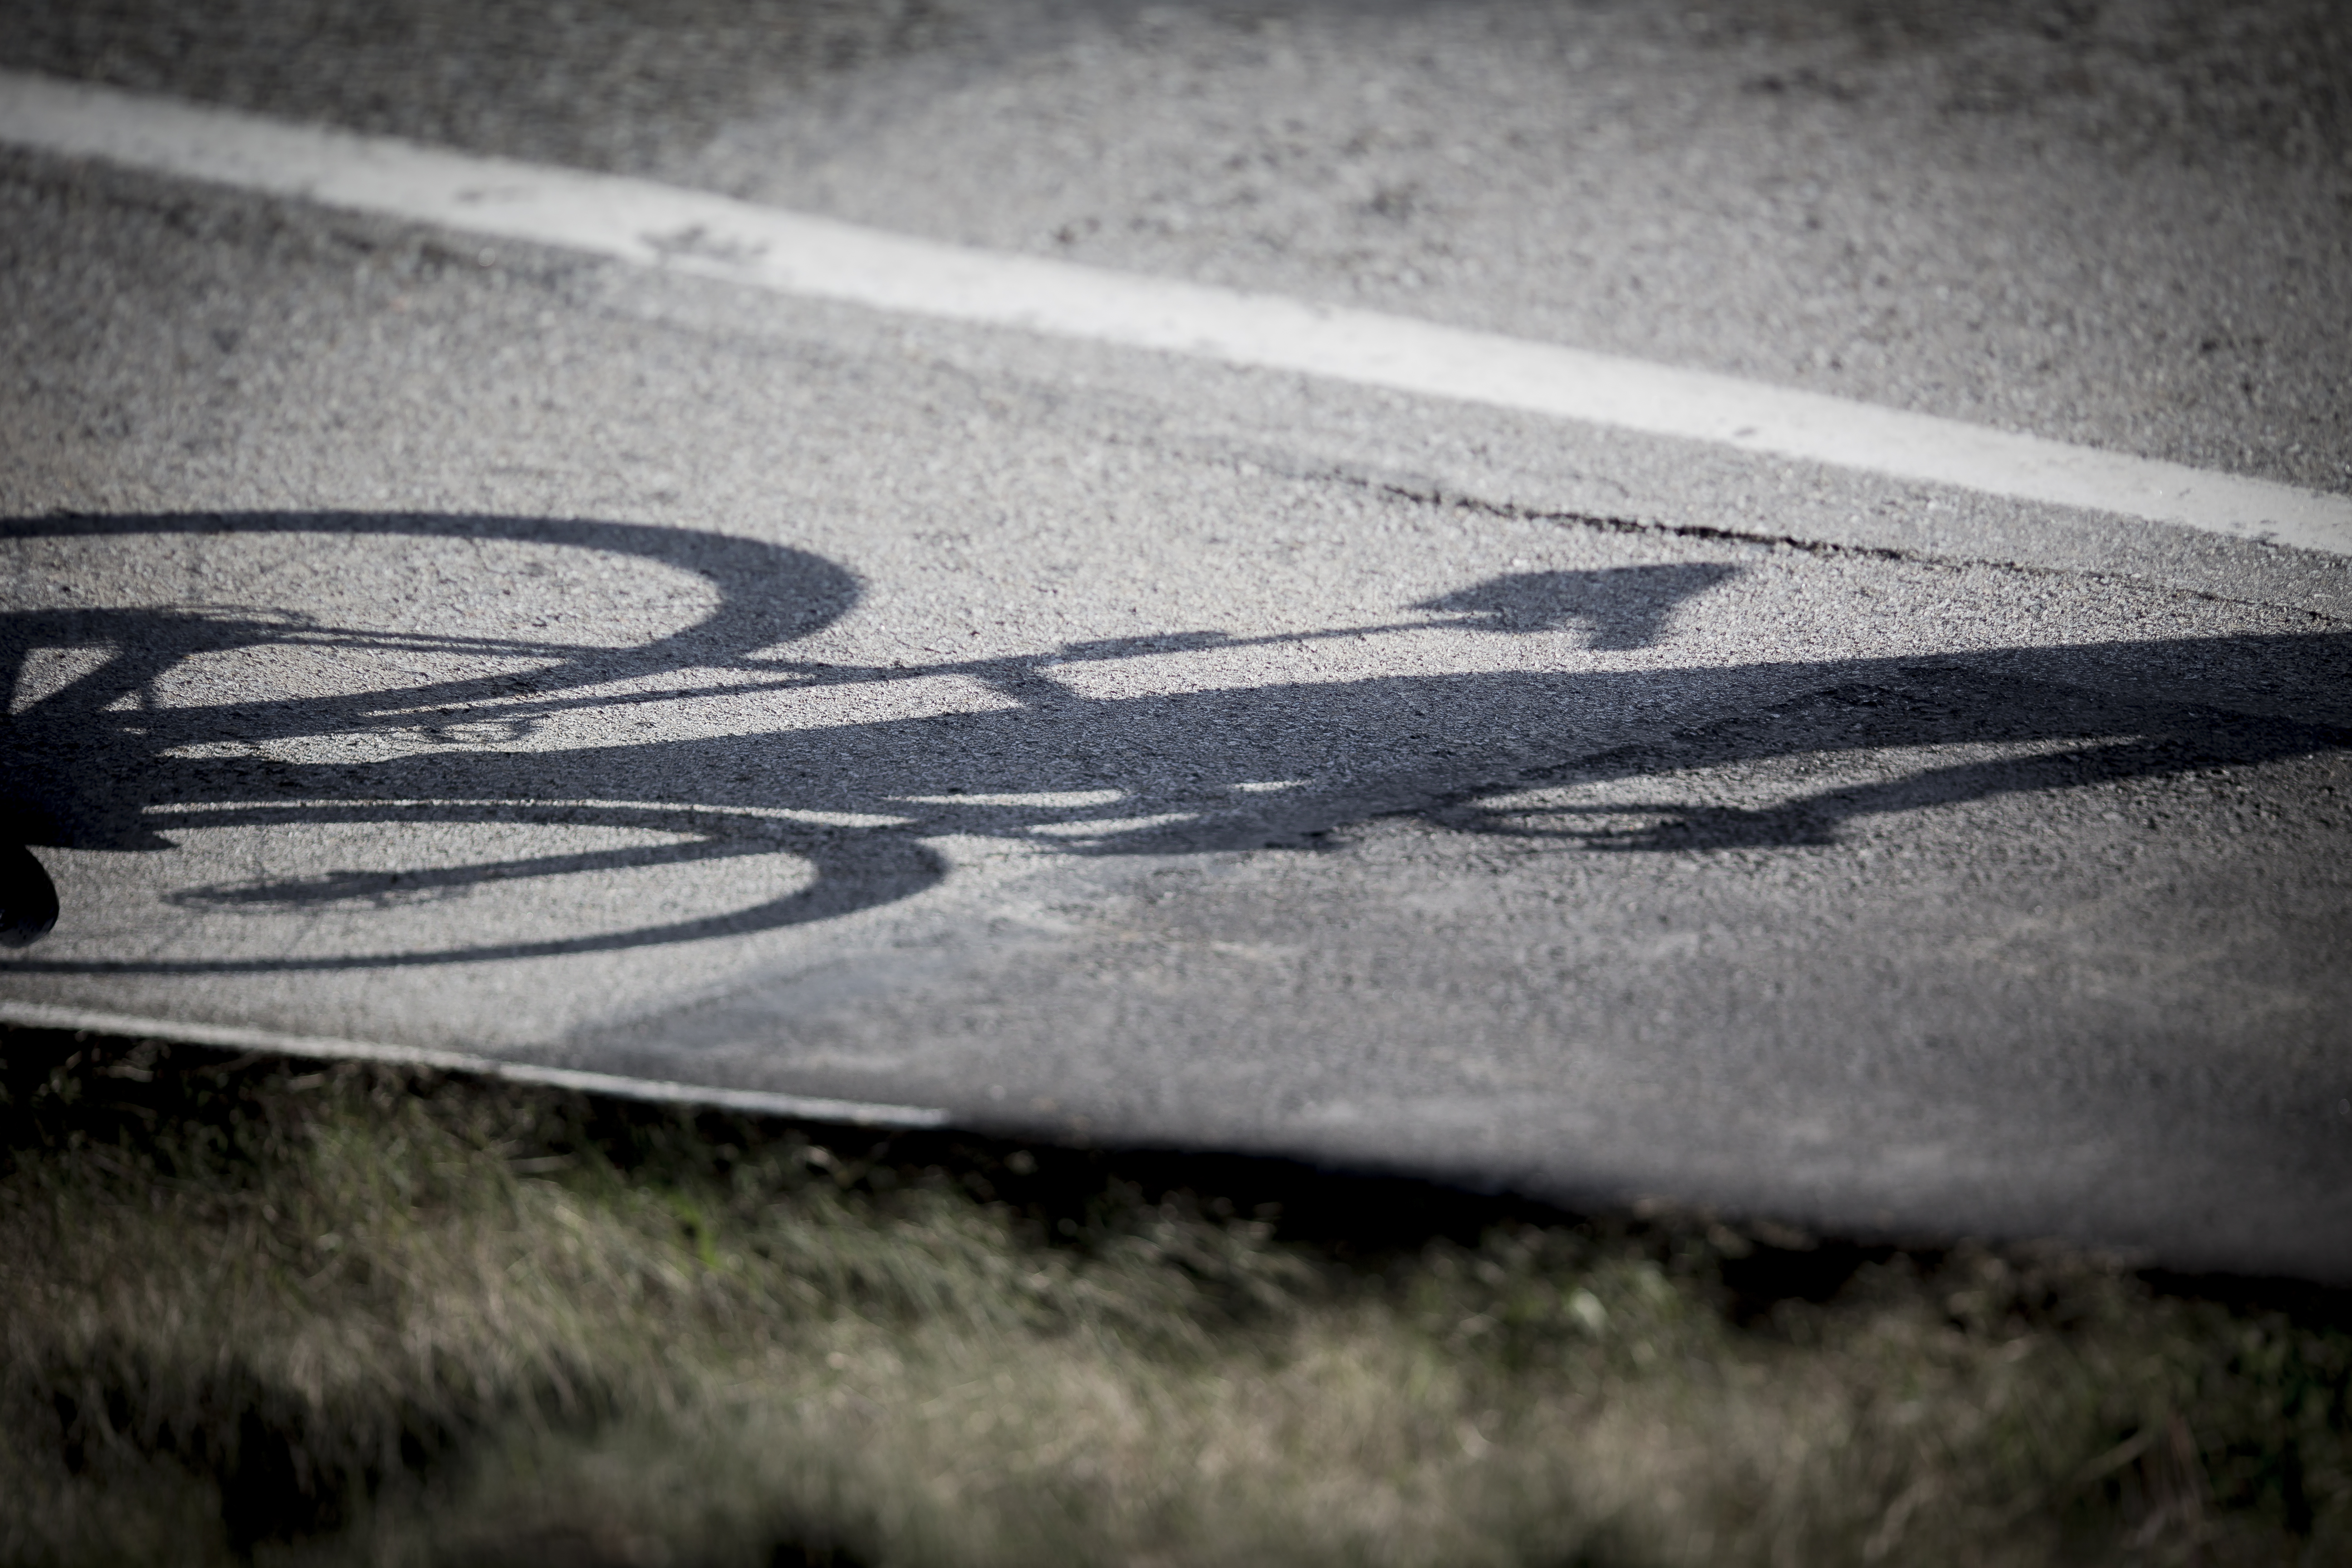 Cyclists are involved in 8% of road accidents in Europe